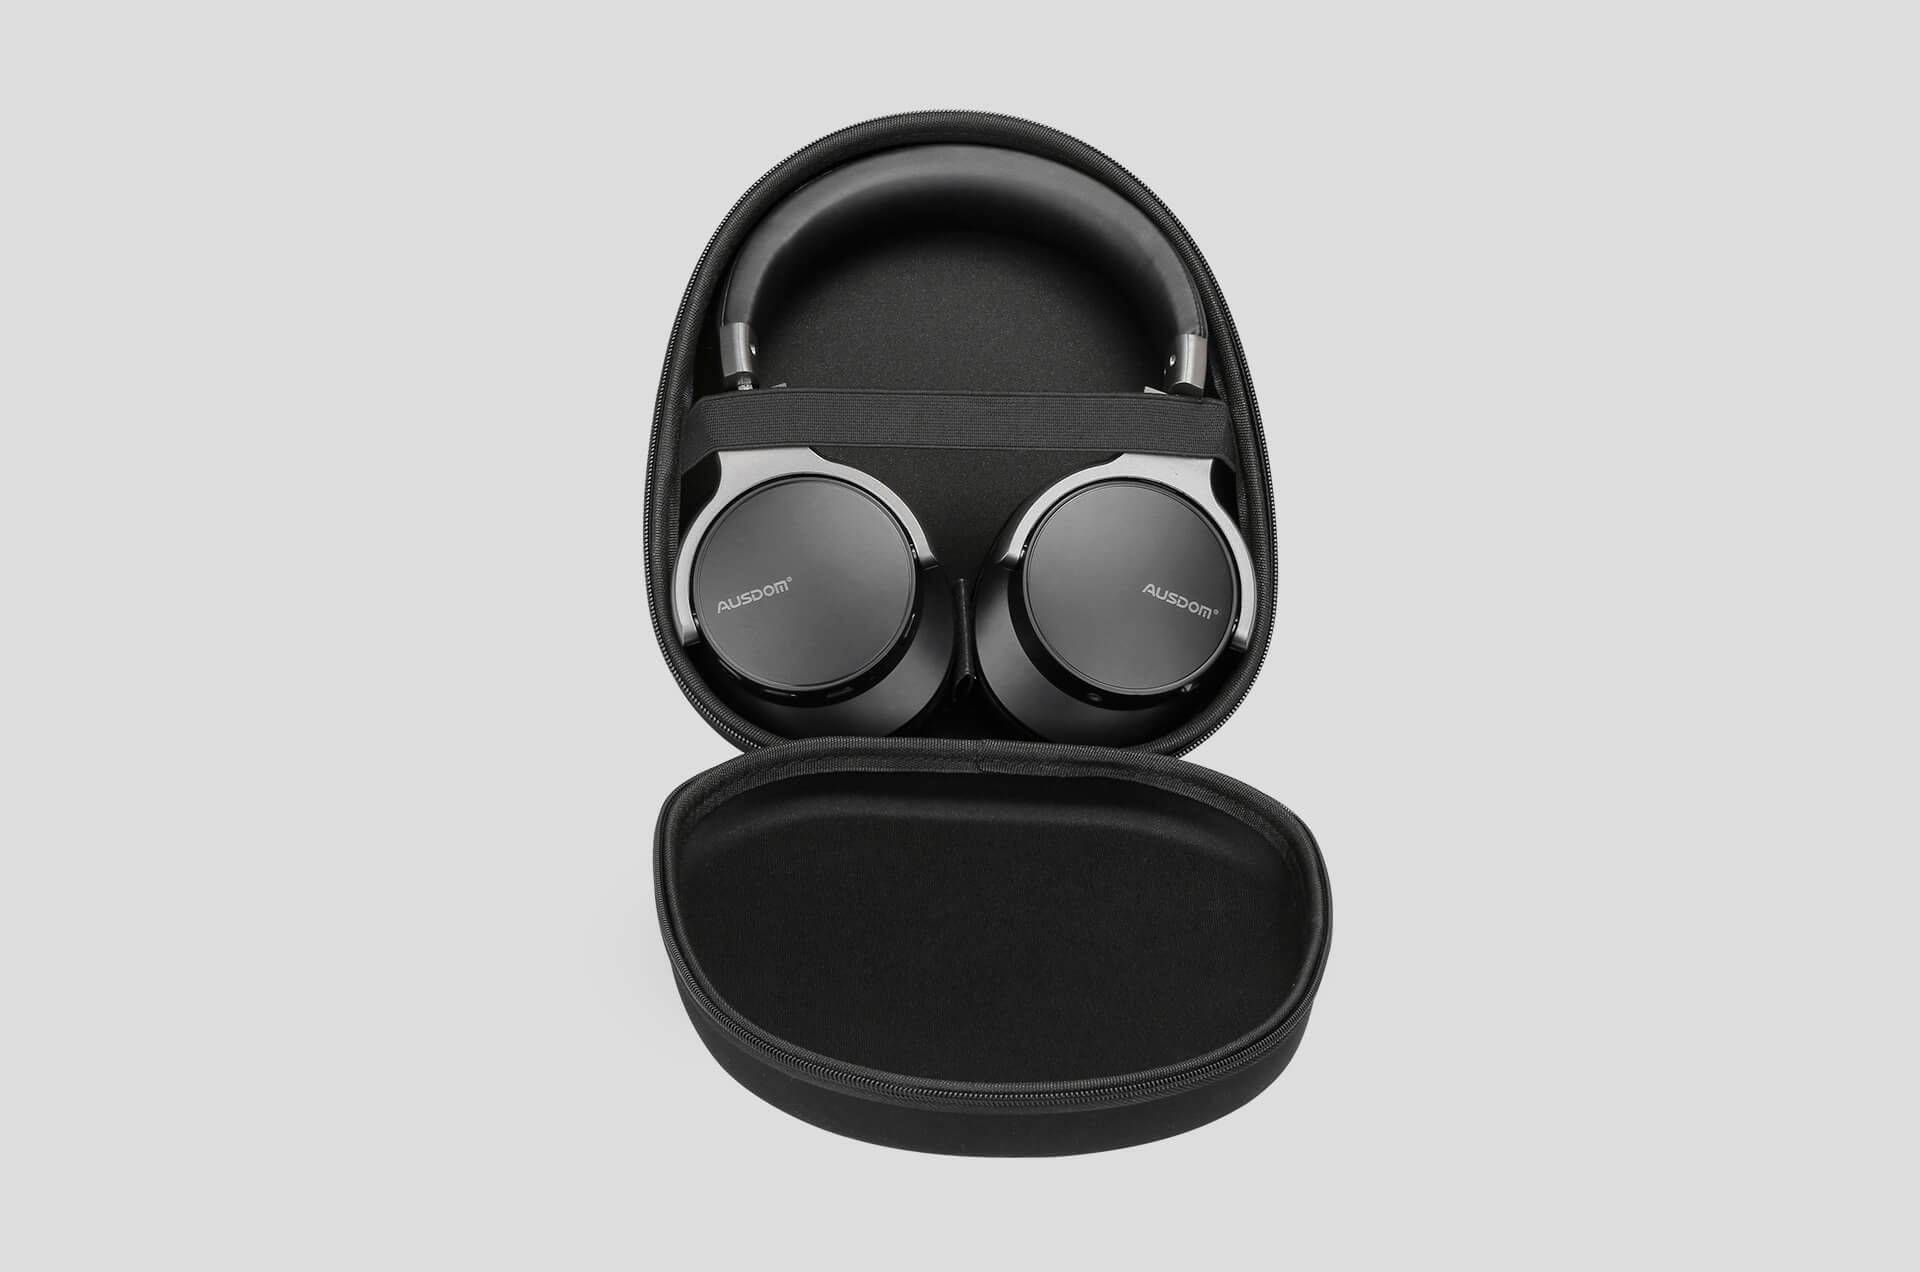 Ausdom ANC8 Active Noise Cancelling Bluetooth Headphones